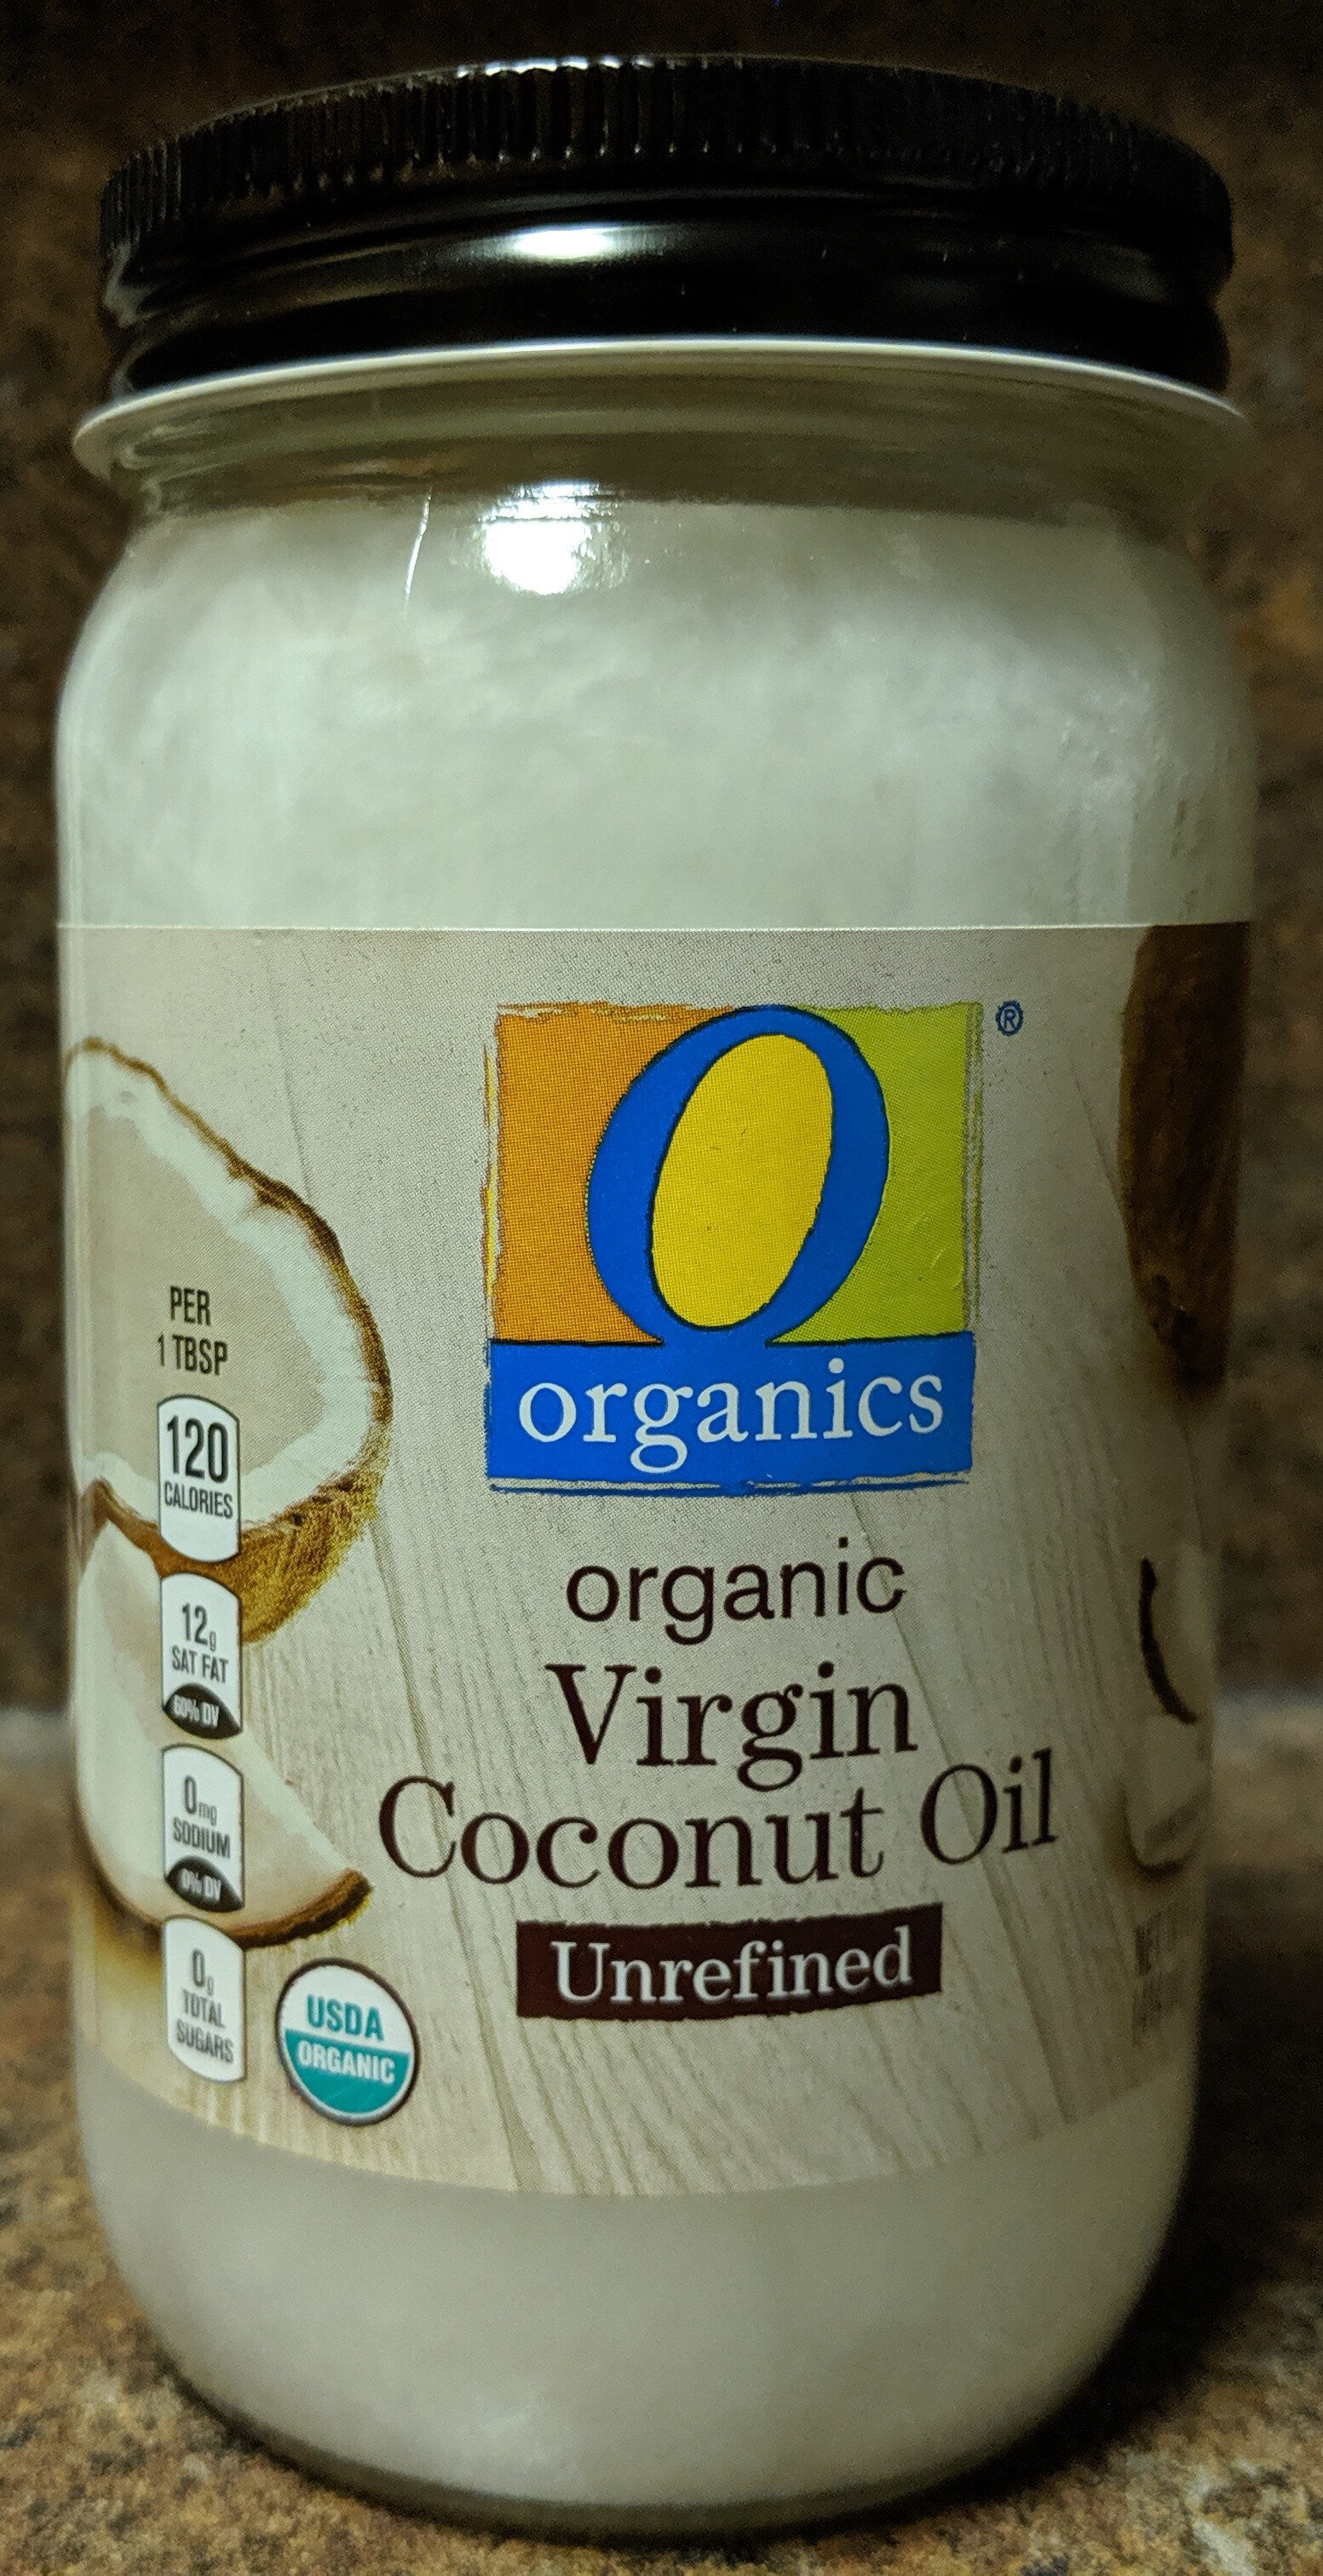 Organic Virgin Coconut Oil Unrefined - Produit - en